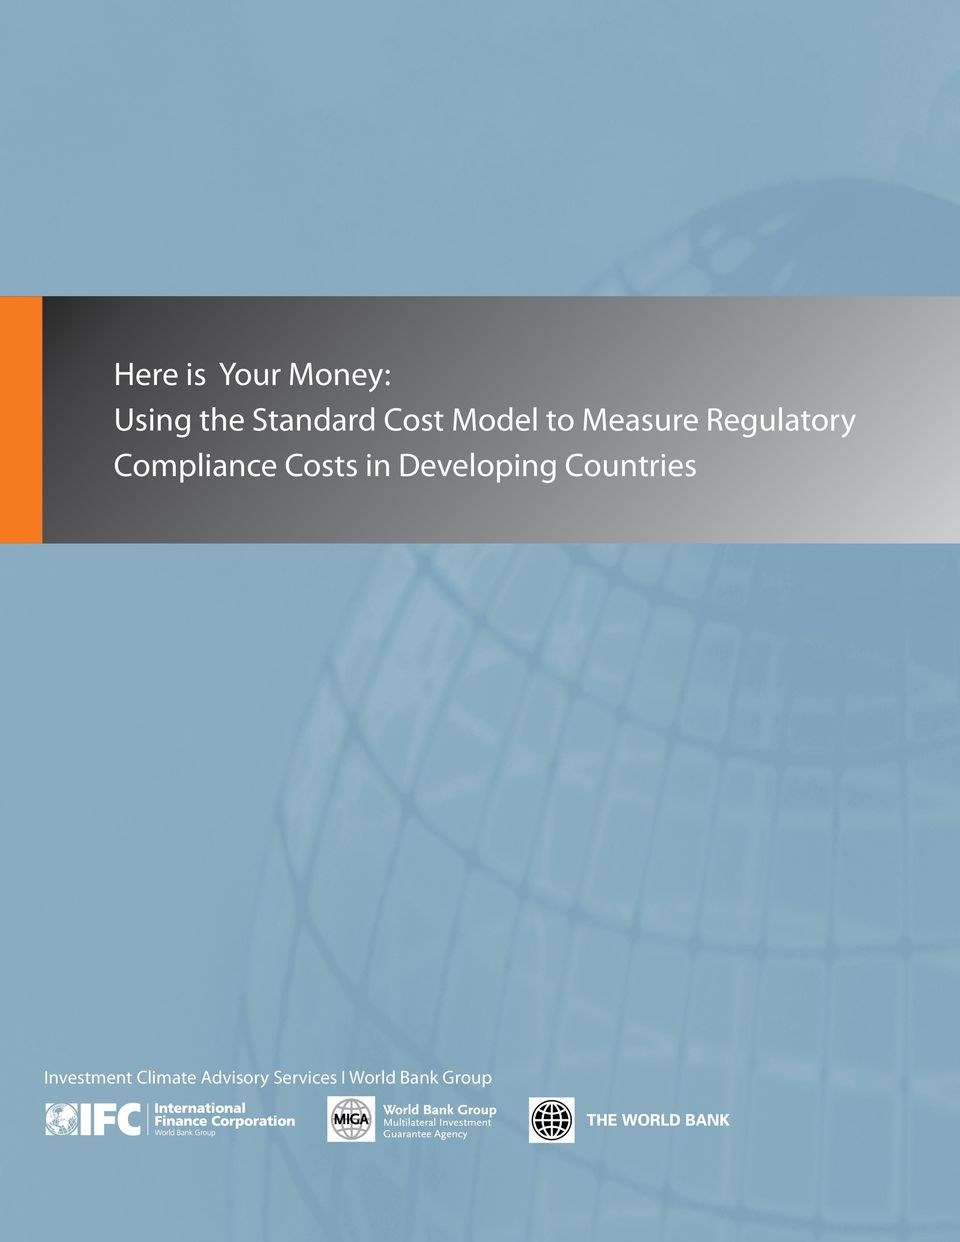 Compliance Costs in Developing Countries